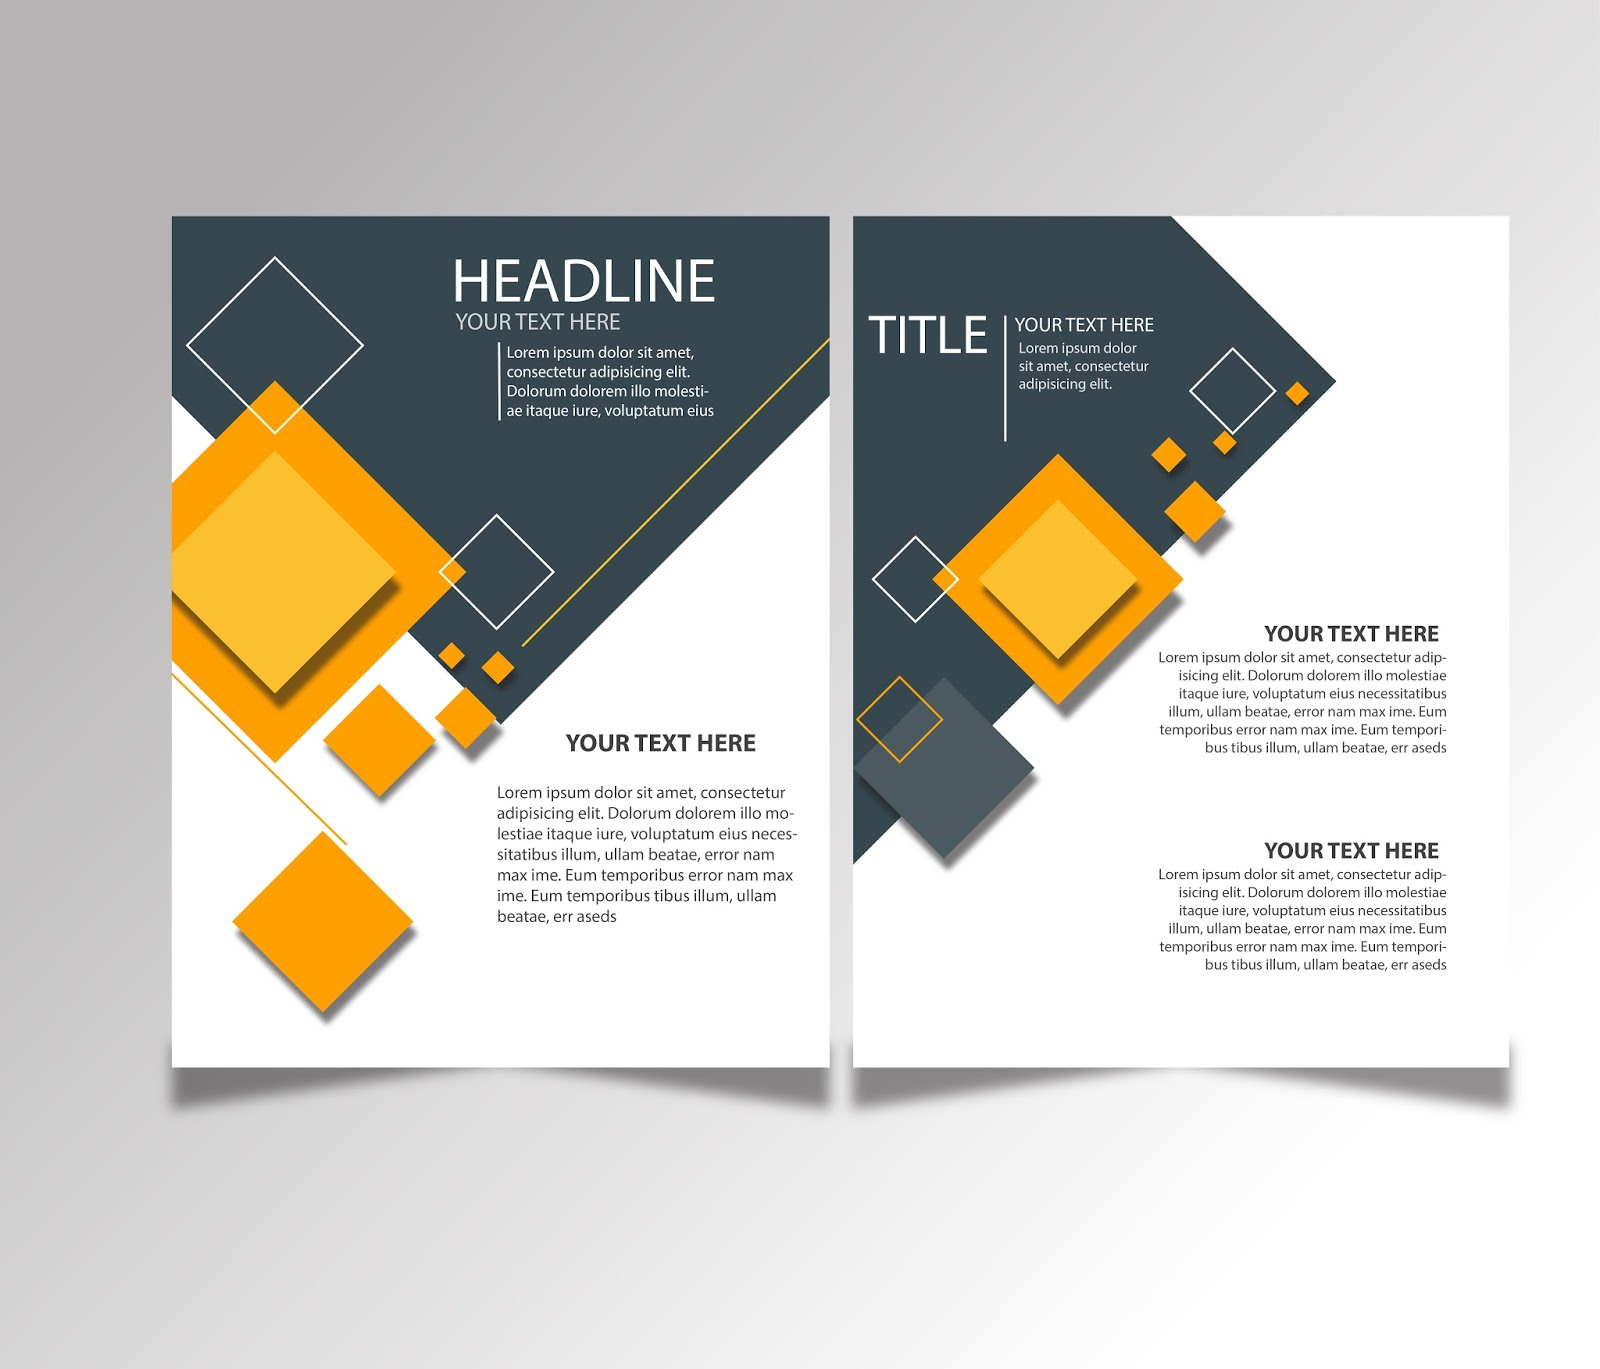 Free Download Brochure Design Templates Ai Files - Ideosprocess Within Creative Brochure Templates Free Download